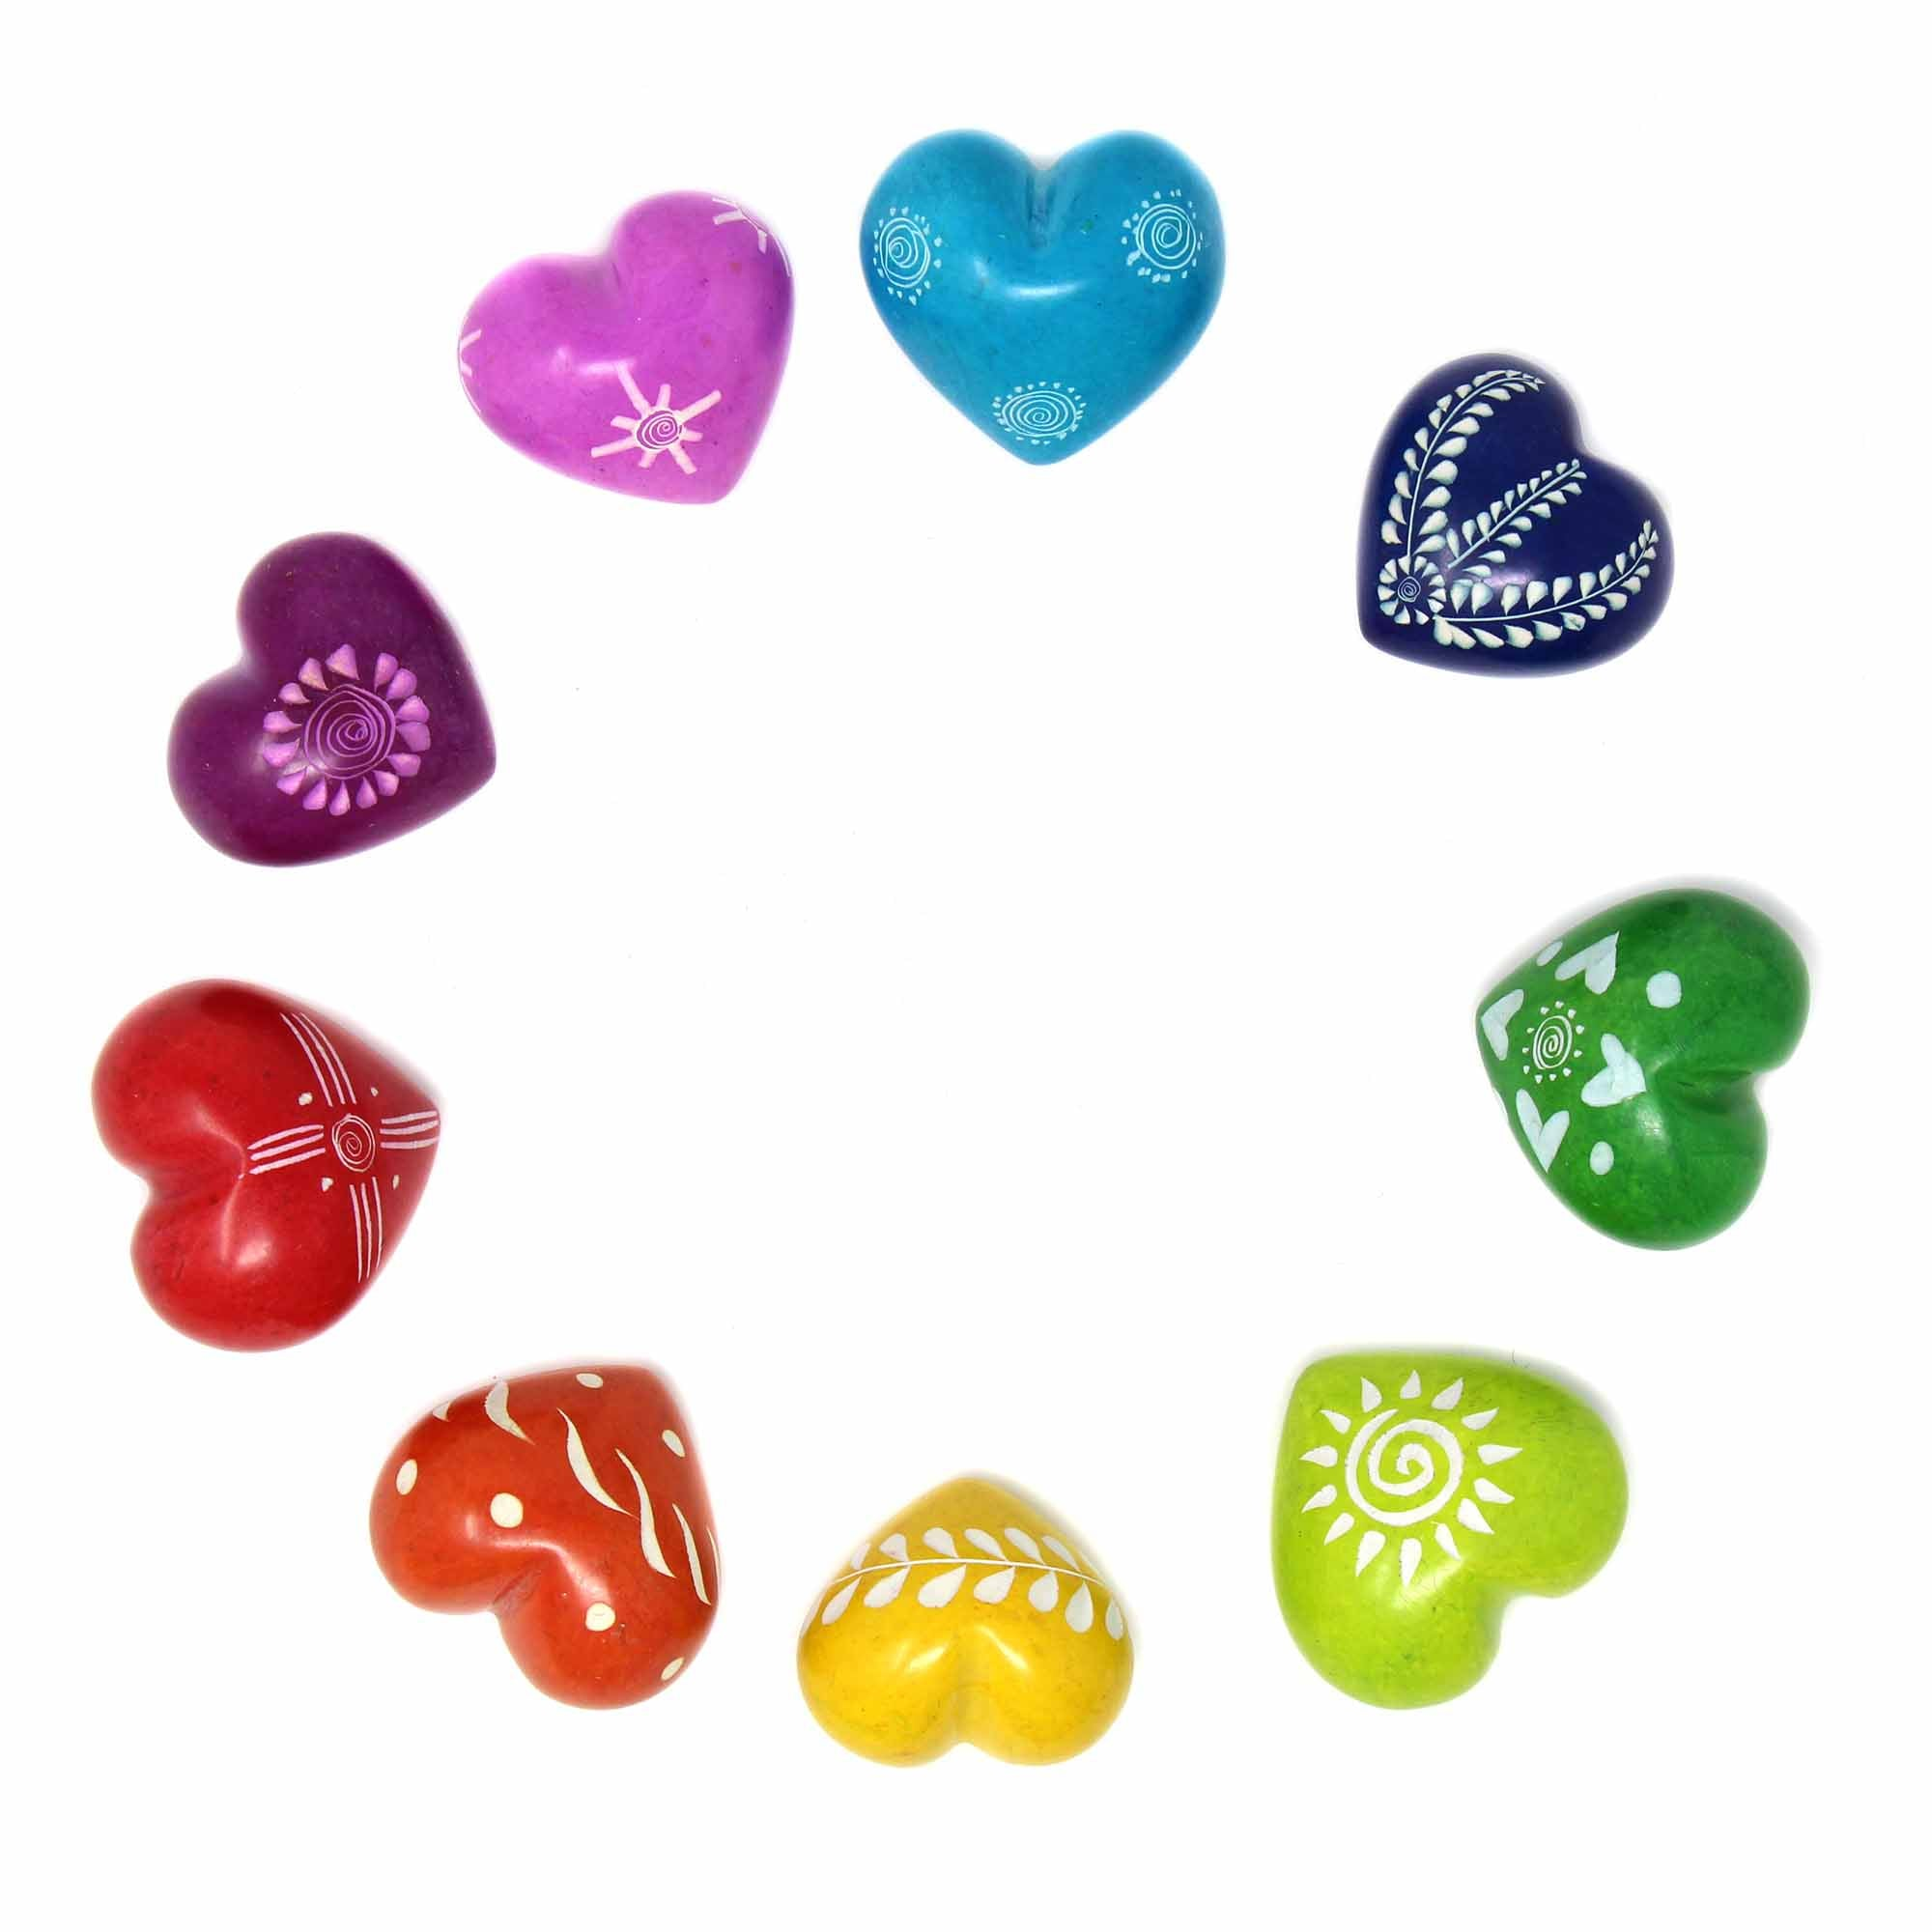 Soapstone Hearts in Assorted Colors with Designs- Approx 3cm (1 inch)